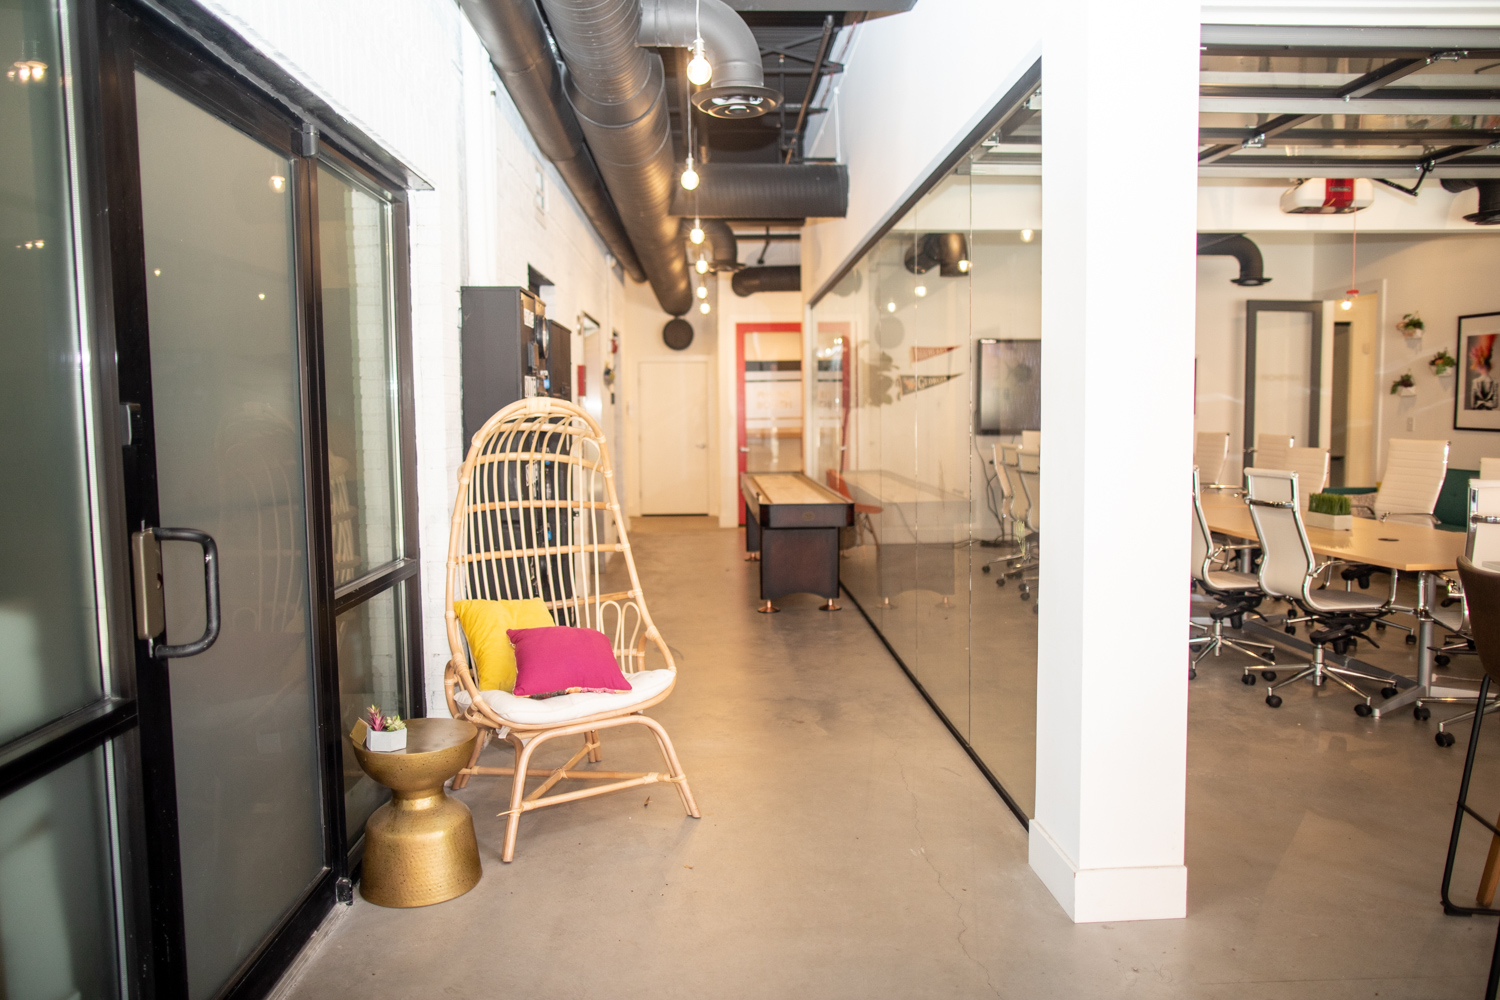 Interior of the Thrive Coworking space where Valor Coffee is located.